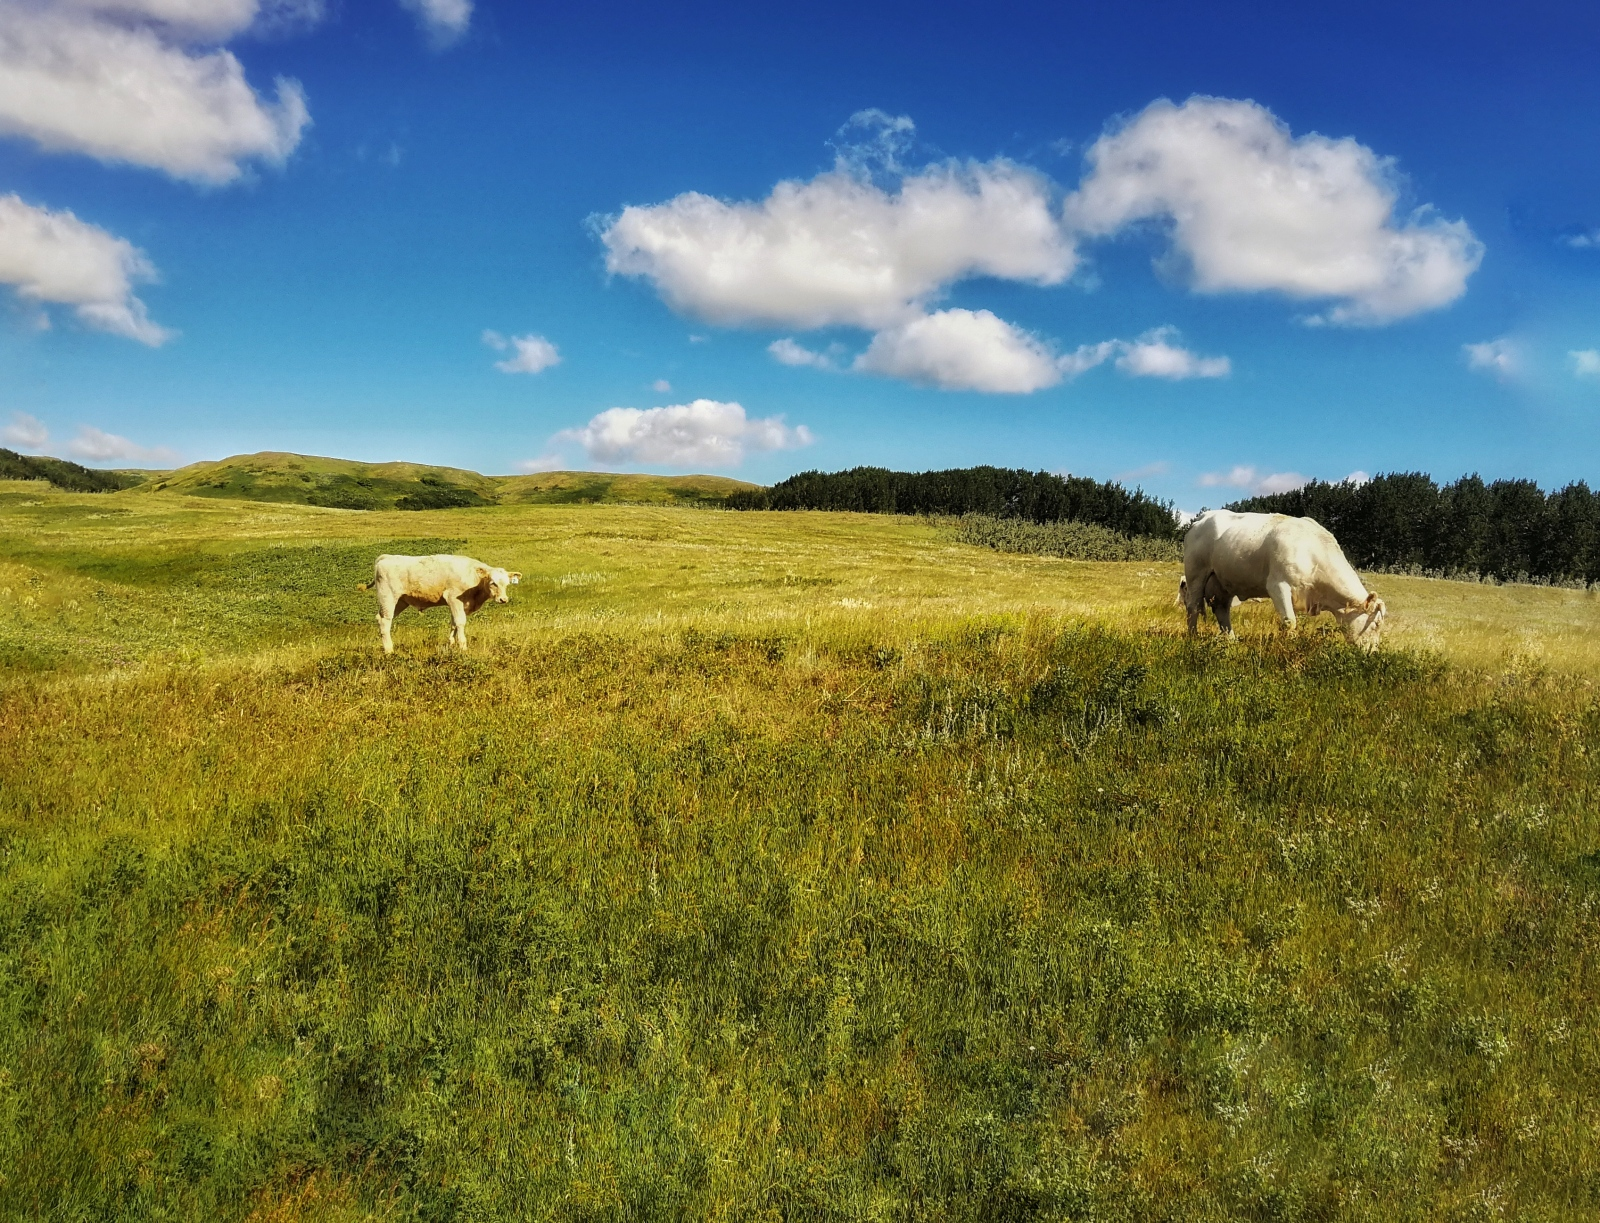 Photography image - Cow and Calf, Saskatchewan